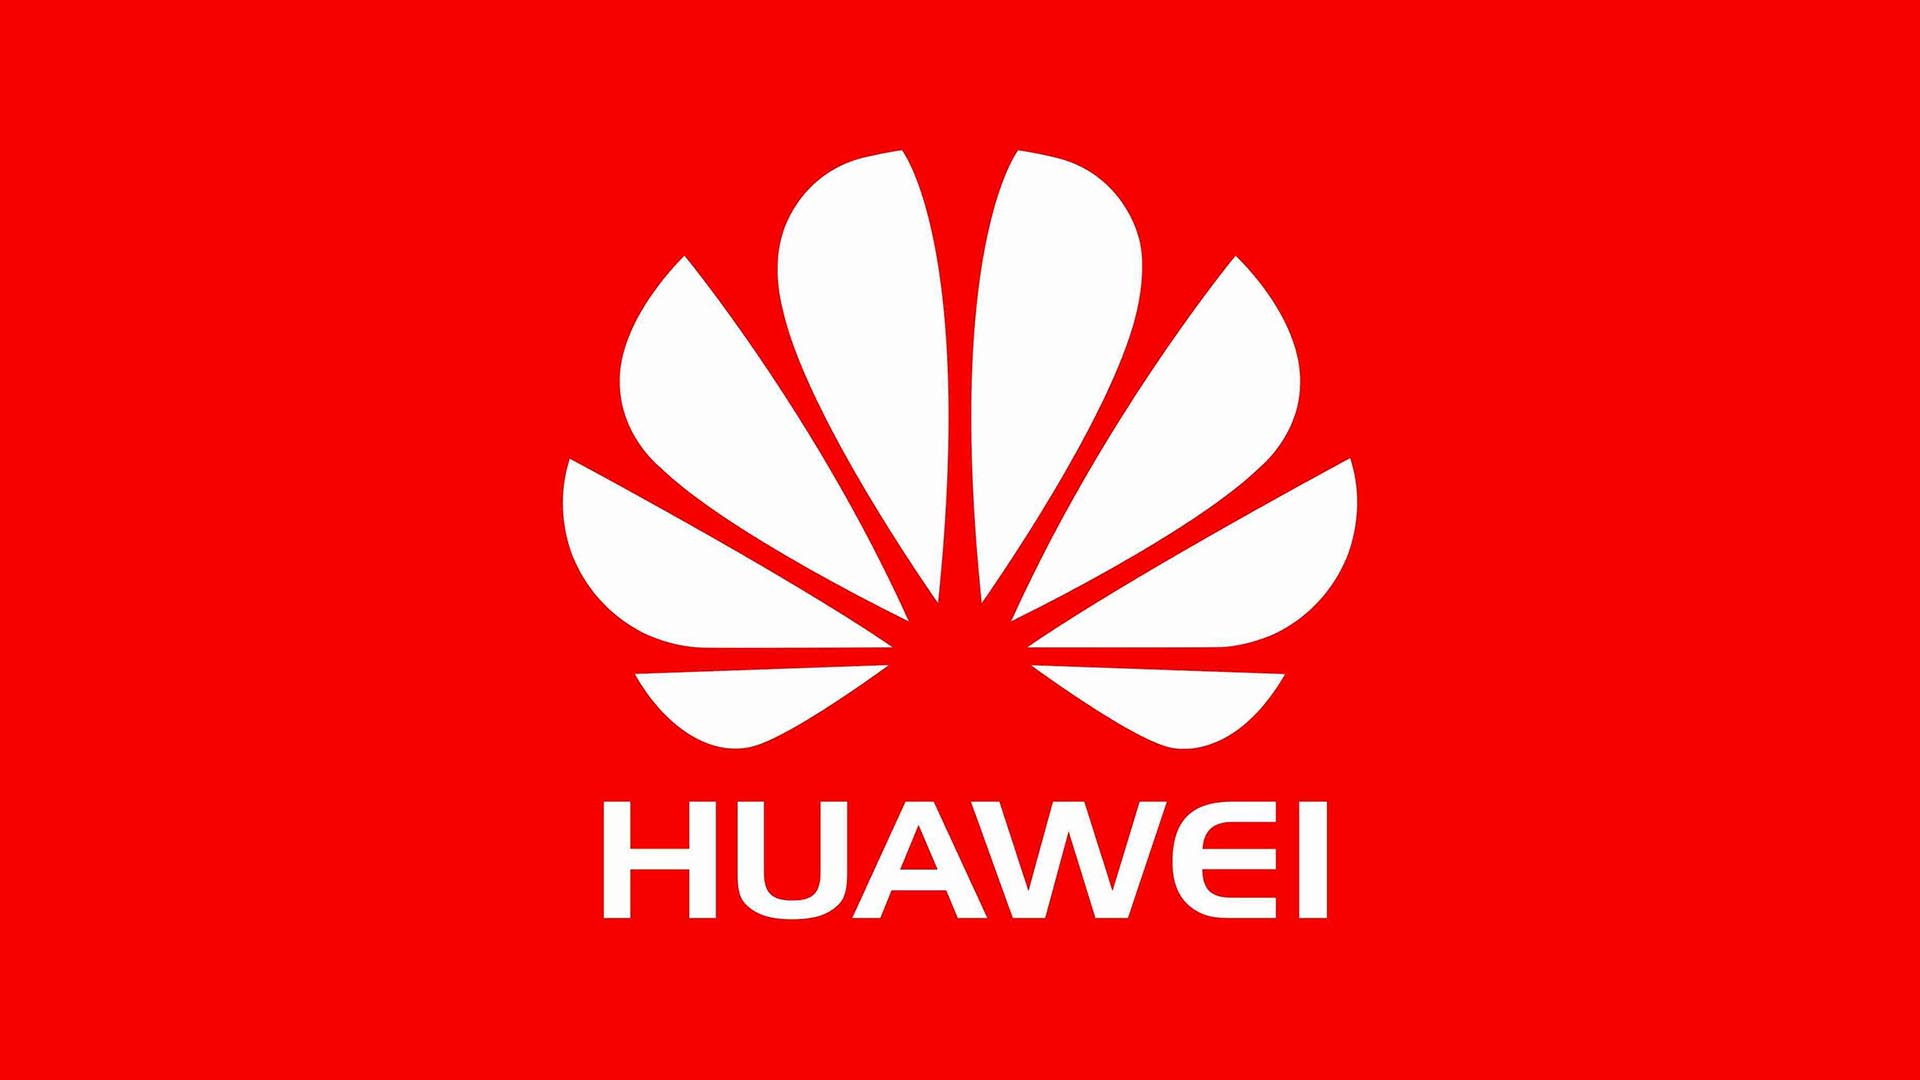 Huawei Drama –   Bare Knuckle US /China Relations